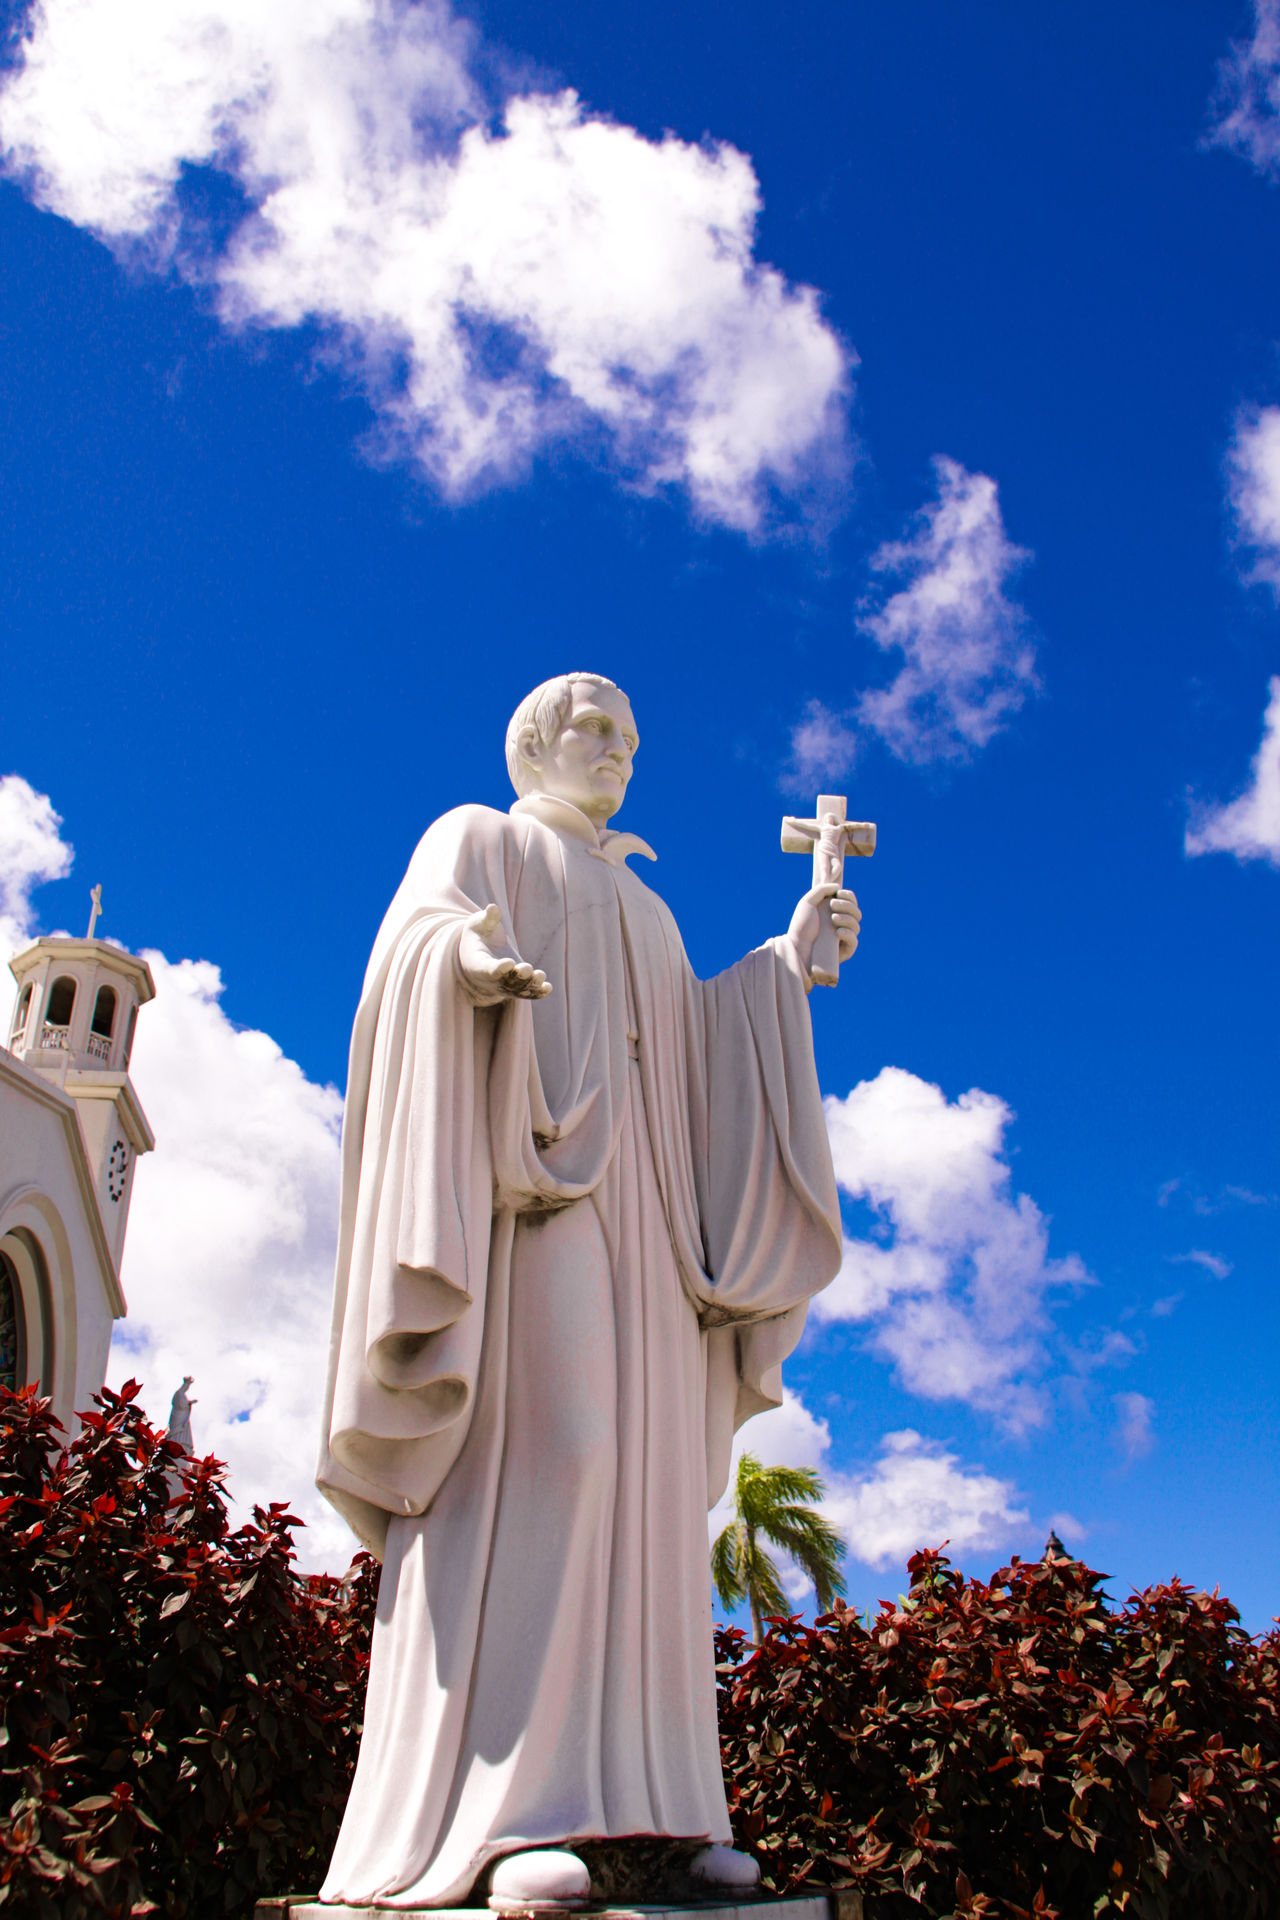 Guam - May 25, 2016: HAGANIA cathedral Father in Guam 43 Golden Moments Blue Sky Cathedrale Eyeem Collection Famous Place Farther Getty Getty Images Guam Hagania Low Angle View Mission Mission District Oceania Outdoors Religion Sky Statue The OO Mission United States USA